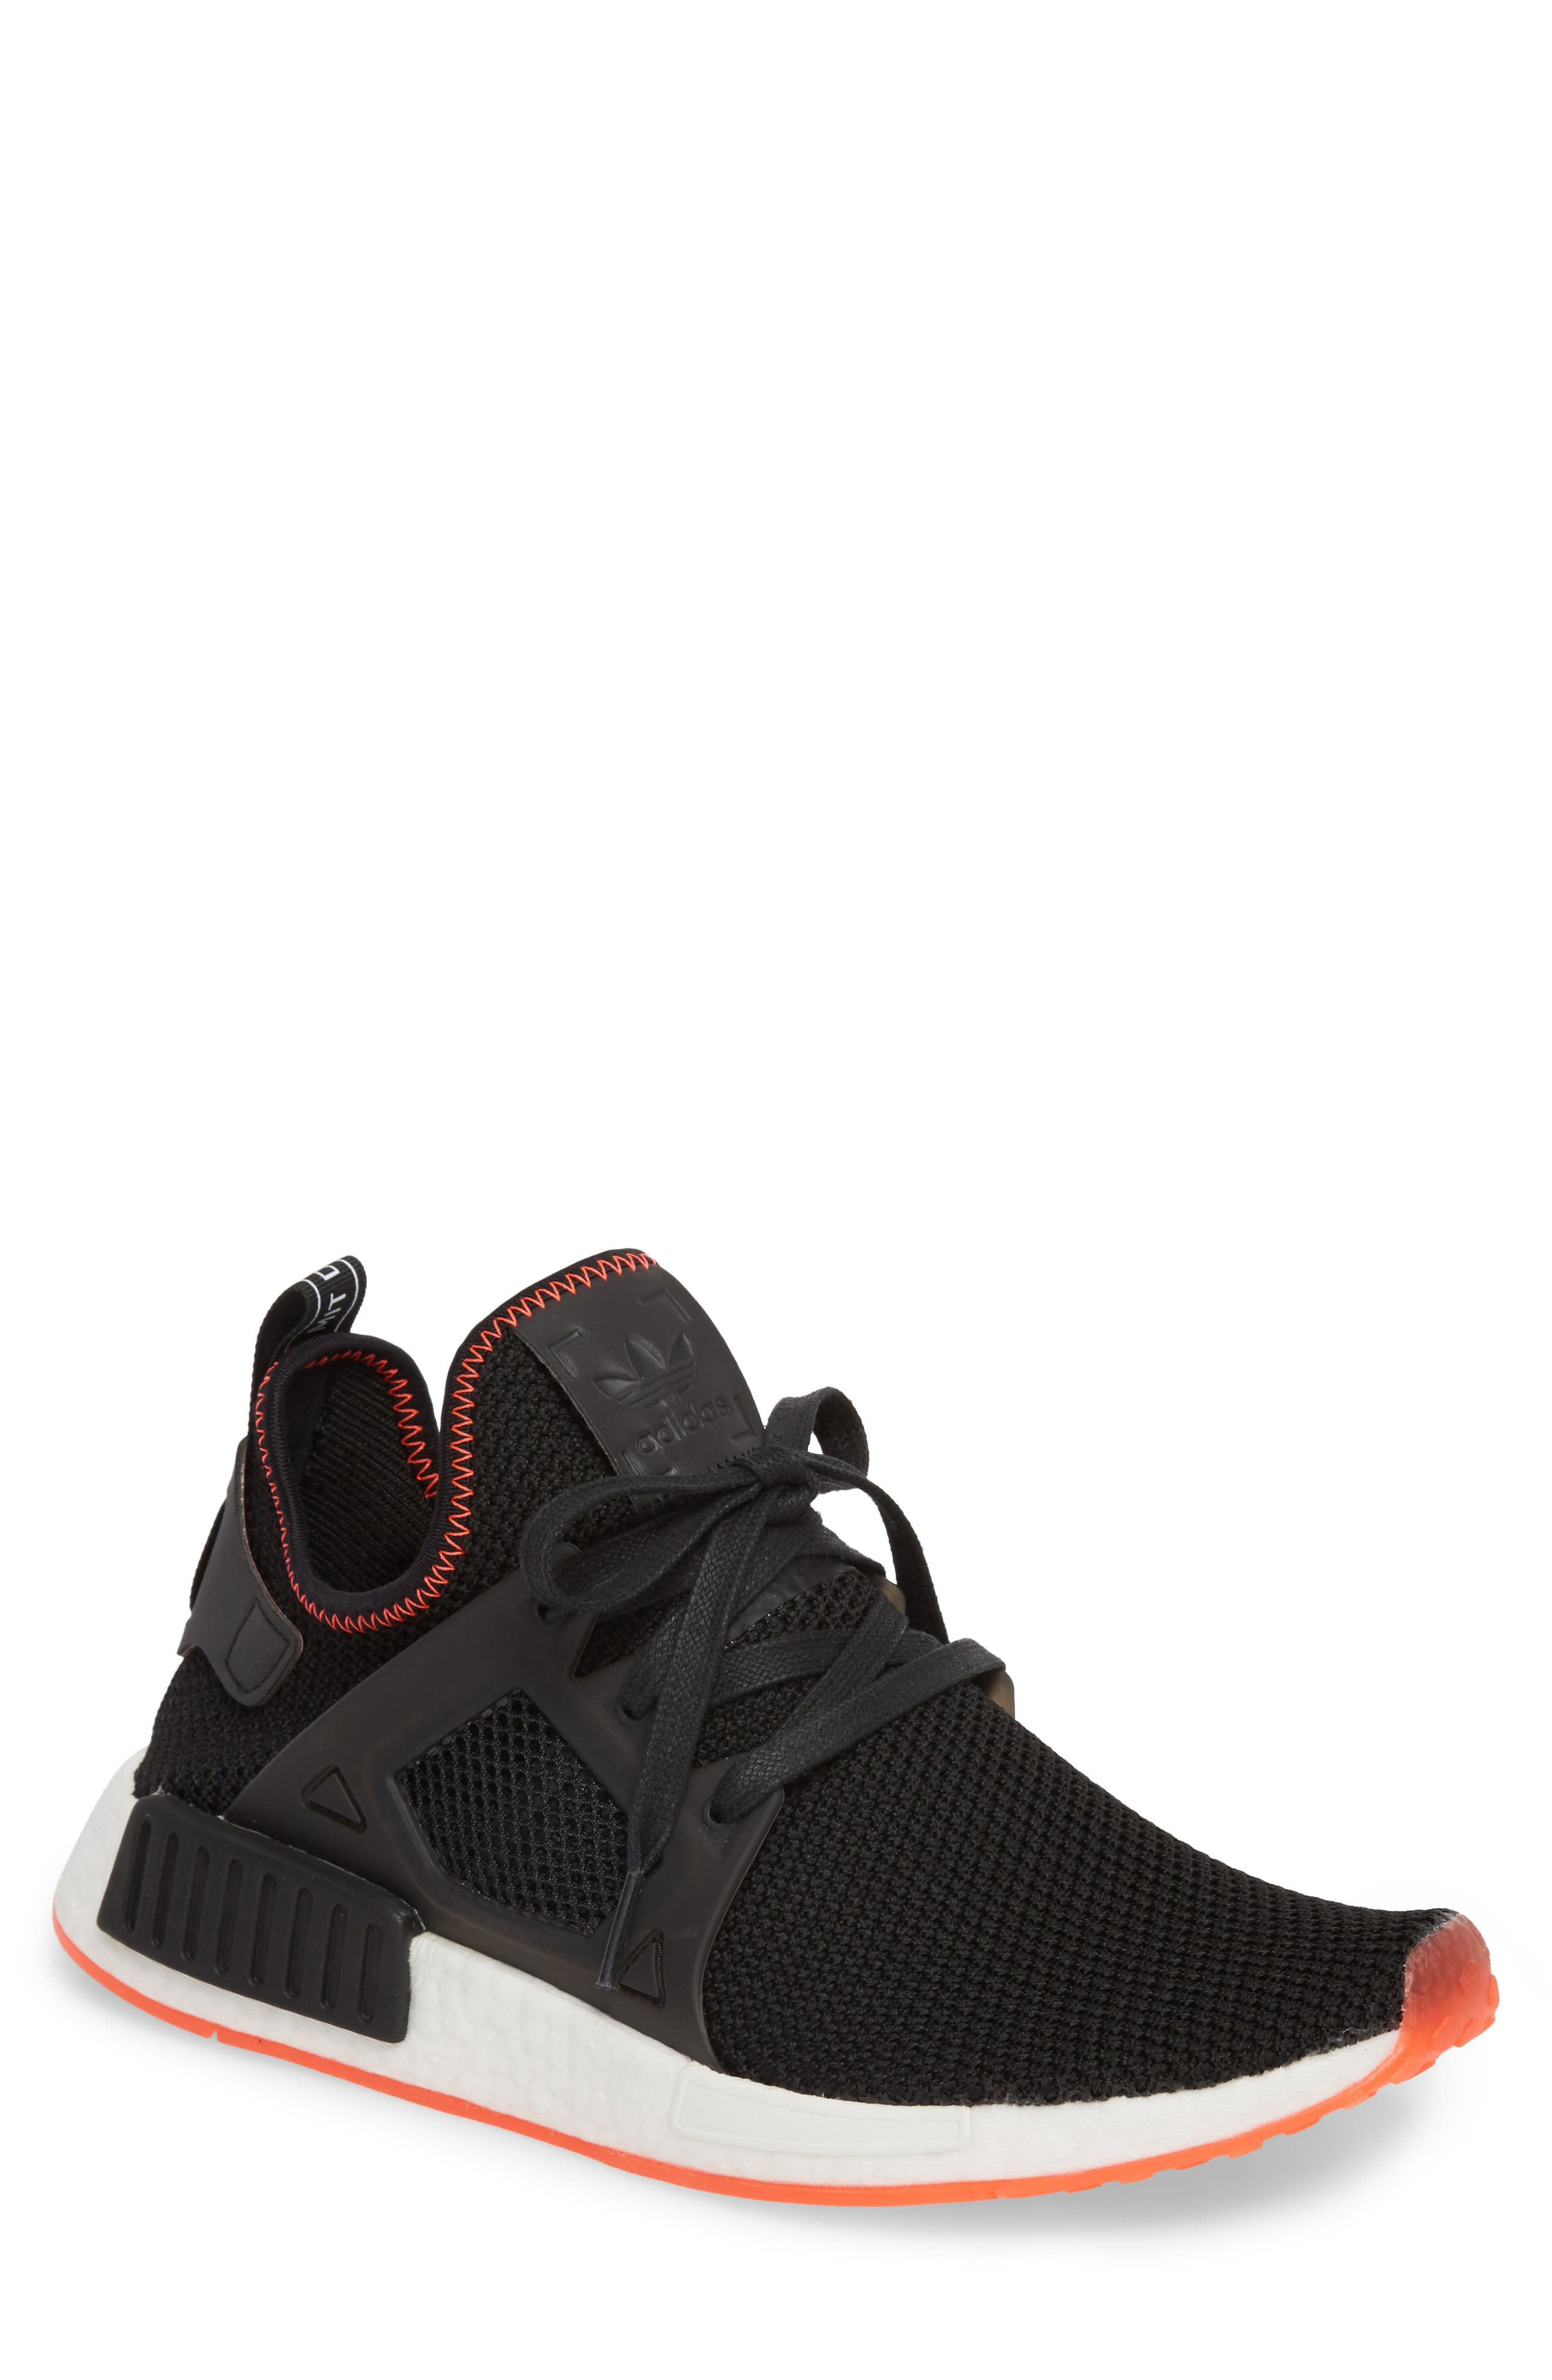 NMD_XR1 Sneaker,                             Main thumbnail 1, color,                             001